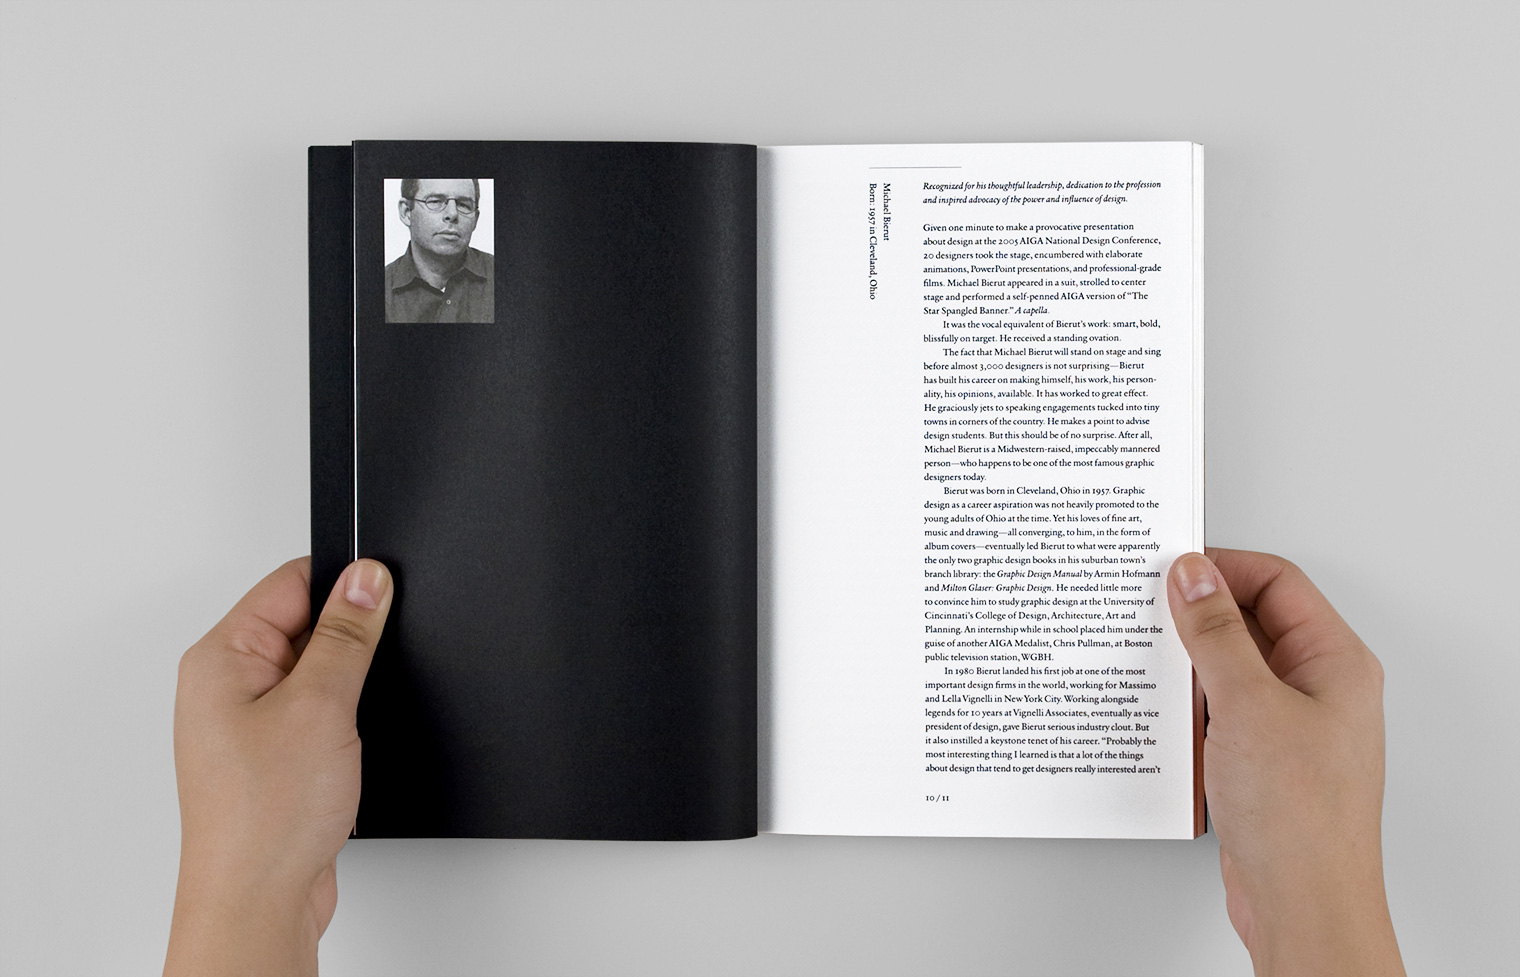 This spread features a profile of Michael Bierut, one of the honorees.